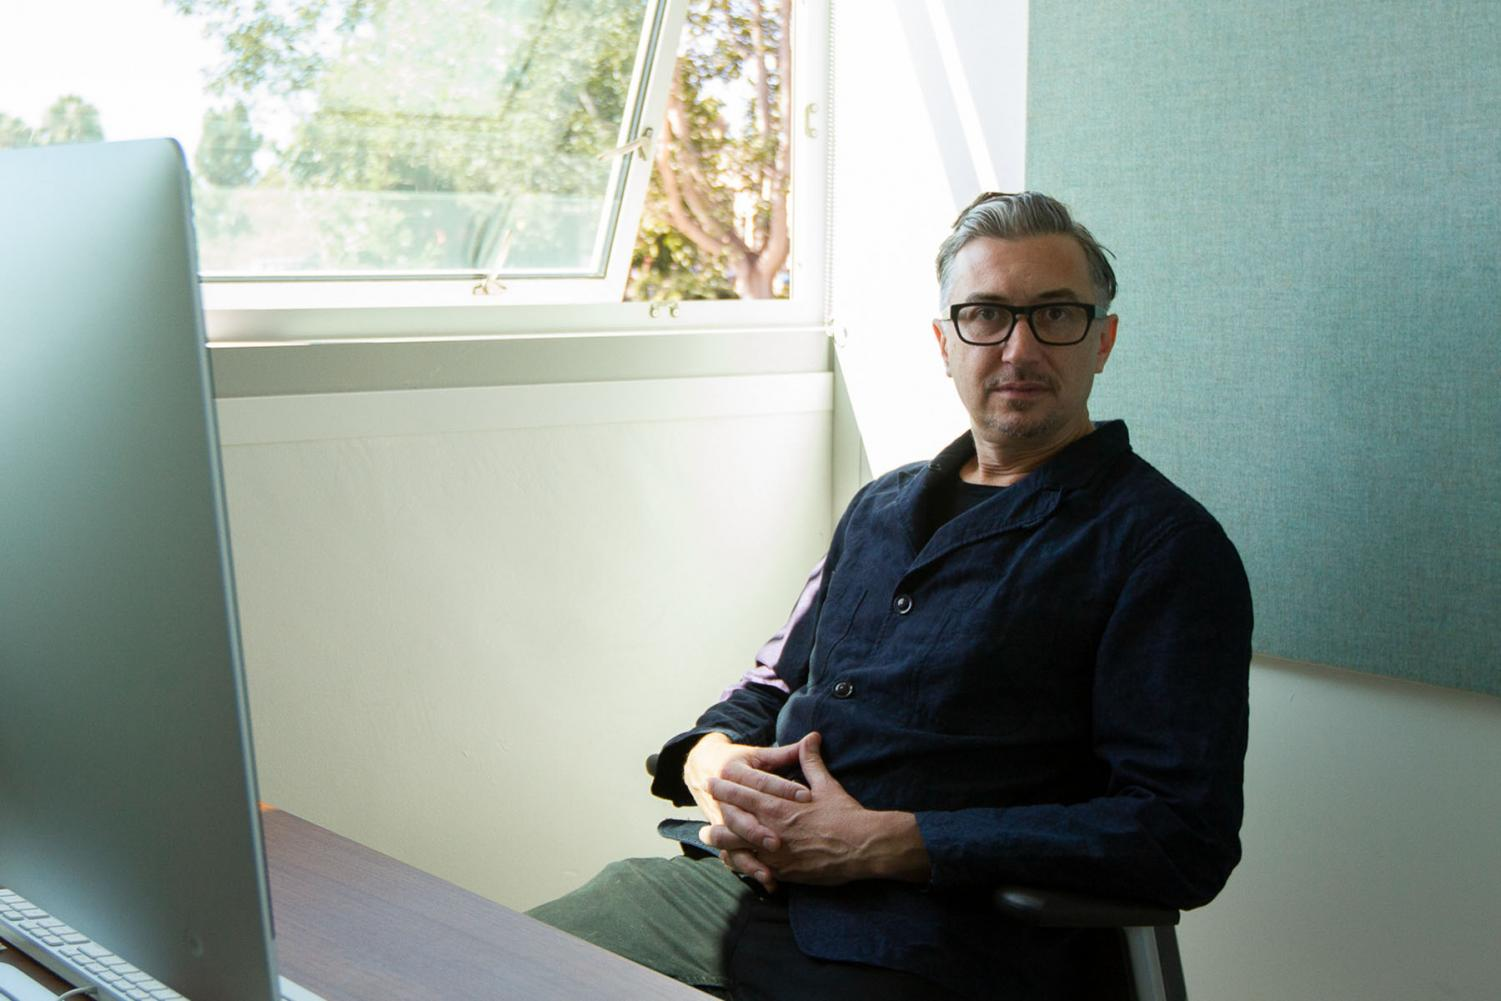 John Connelly sits in his office as the new Director of The Atkinson Gallery on Wednesday, Sept. 11 2019, in the Humanities Building at City College in Santa Barbara, Calif.